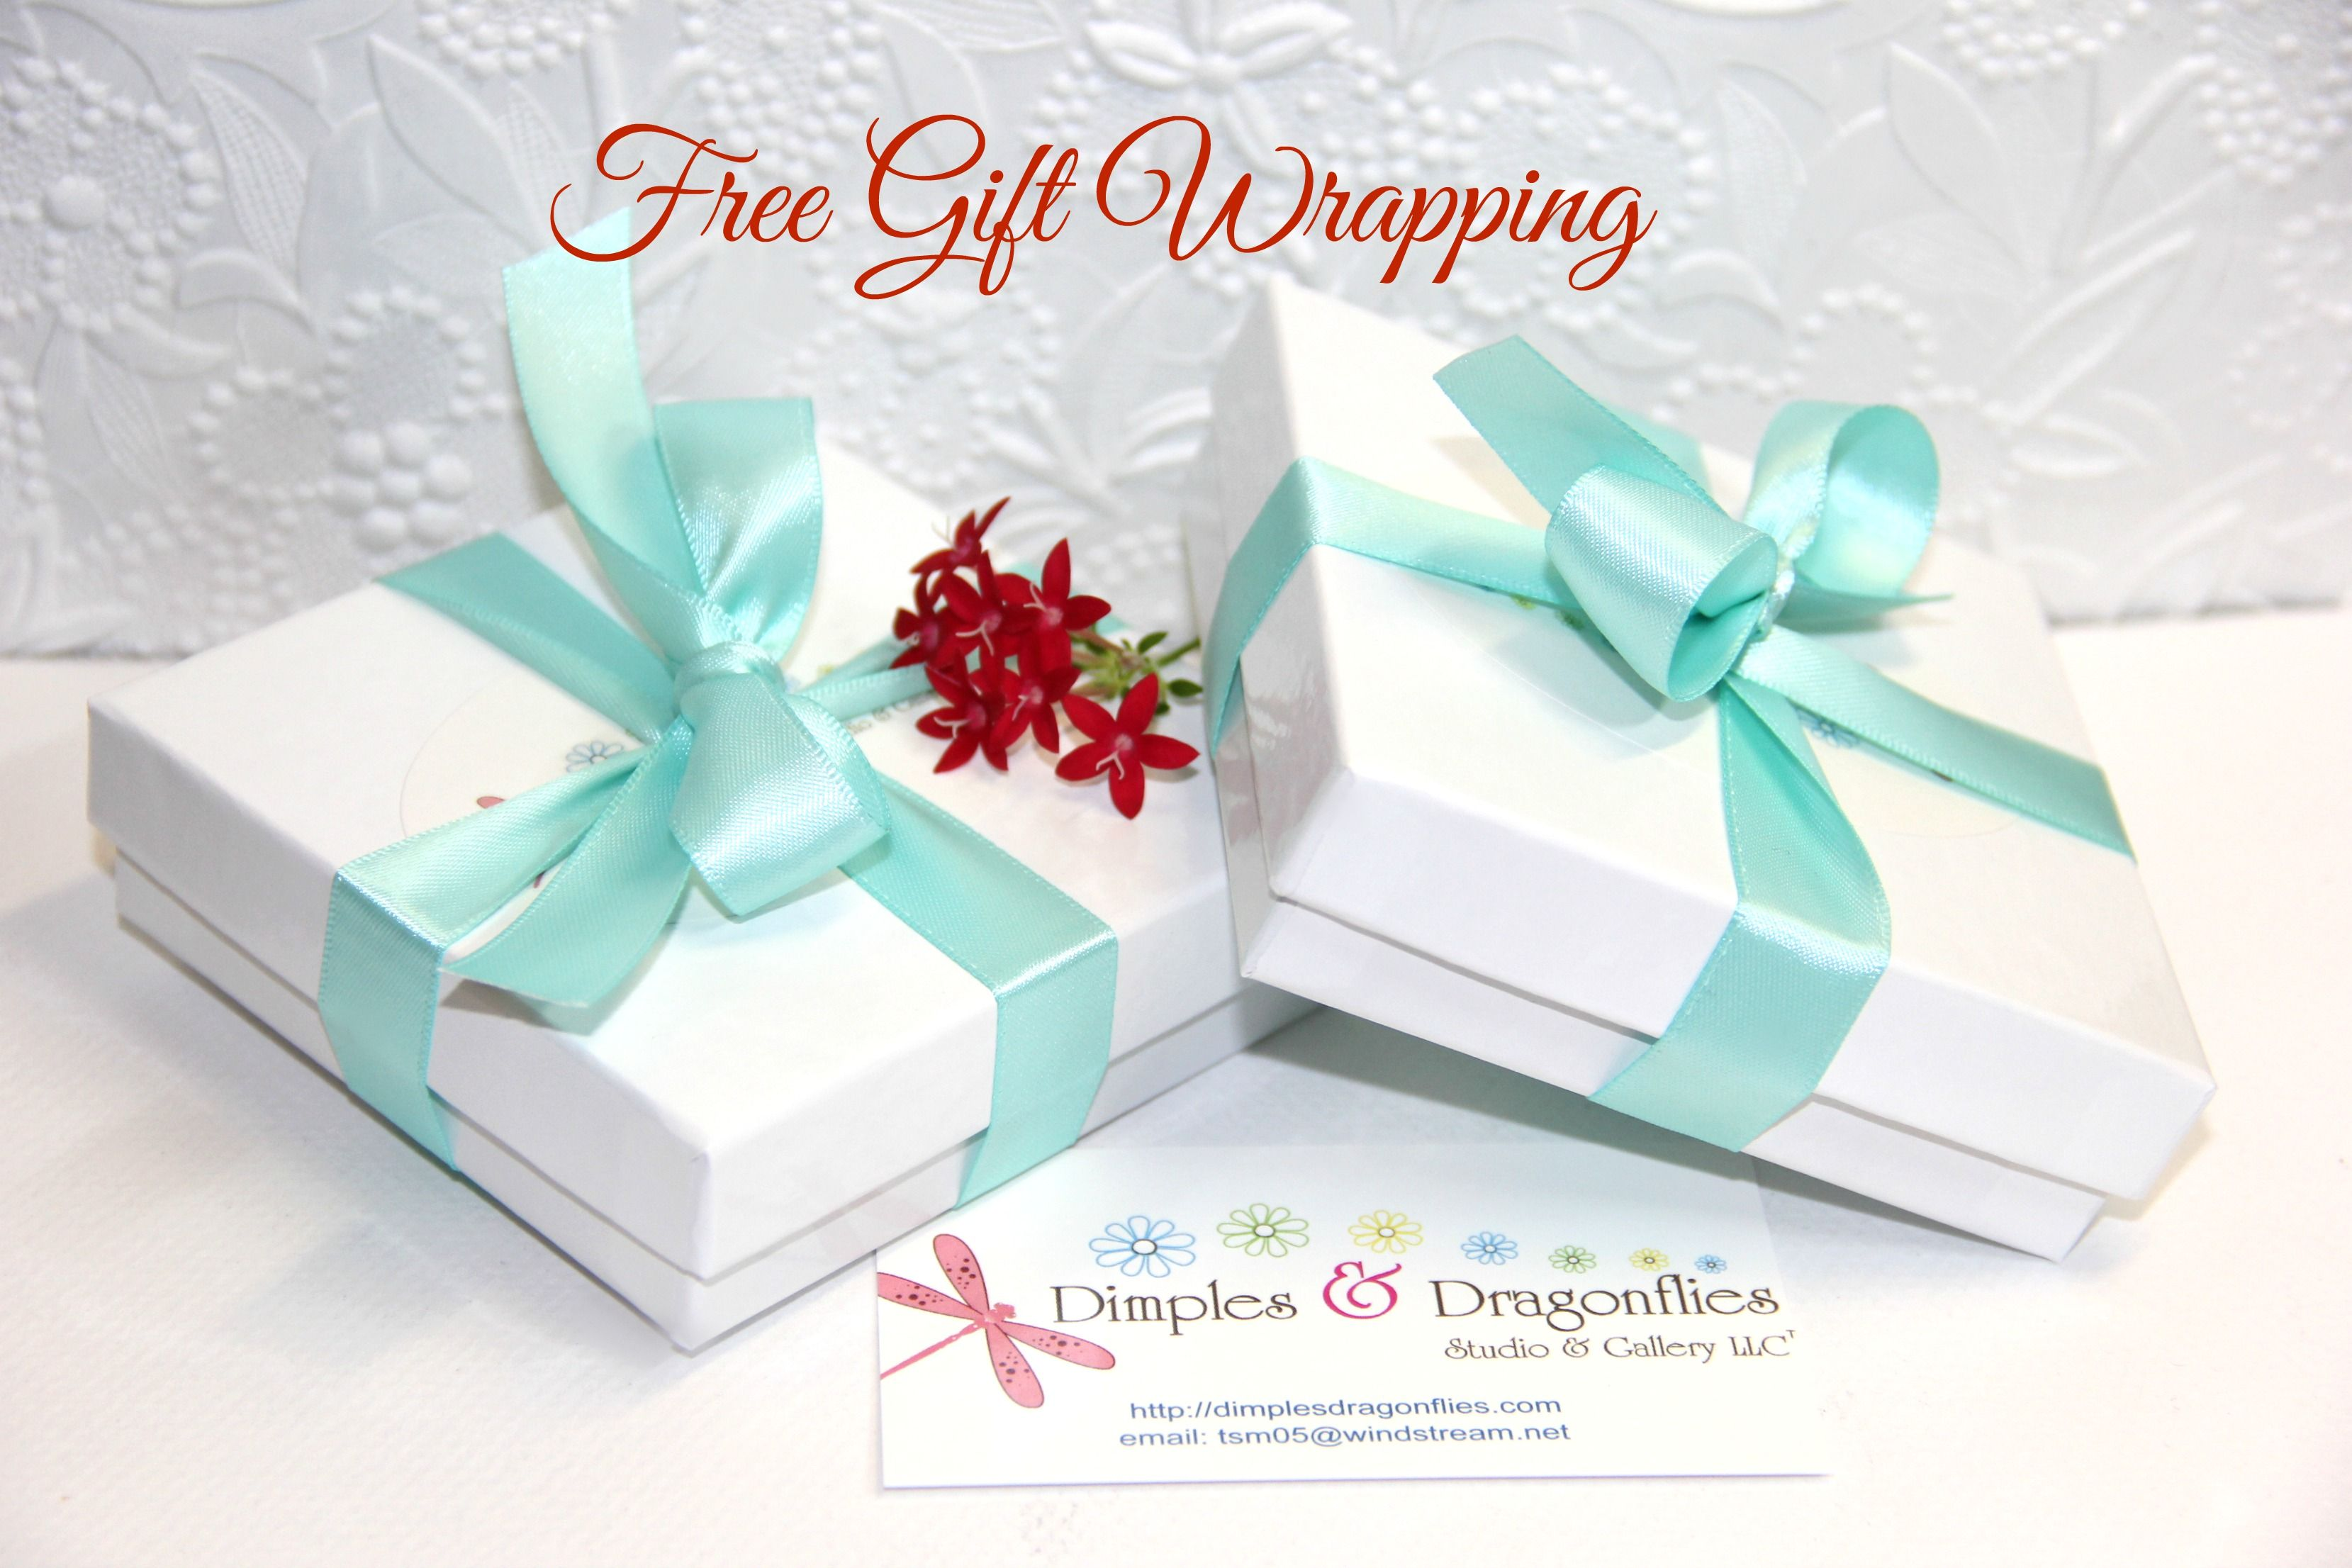 FREE GIFT WRAPPING With Every Purchase From Dimples and Dragonflies ...